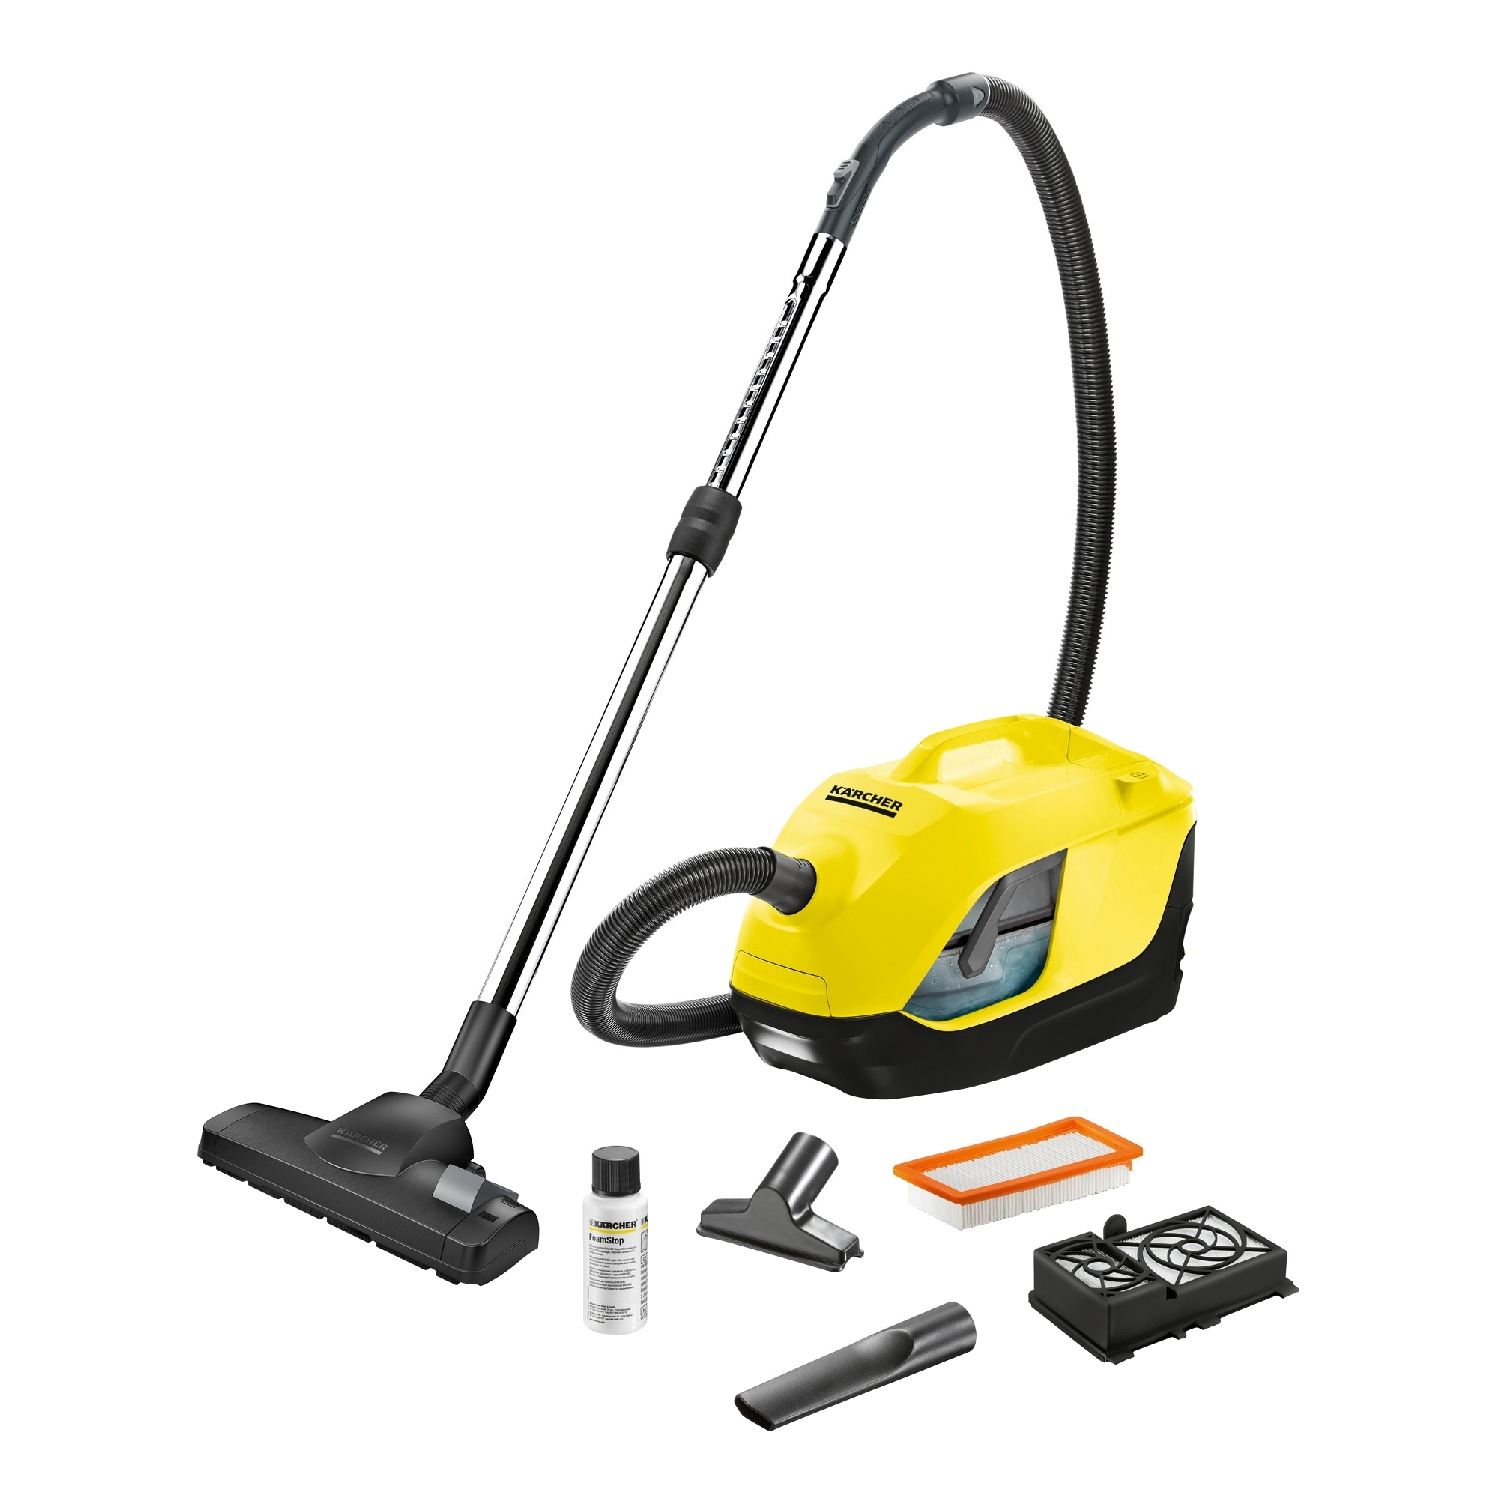 Vacuum cleaner with water filter Karcher DS 6 *EU